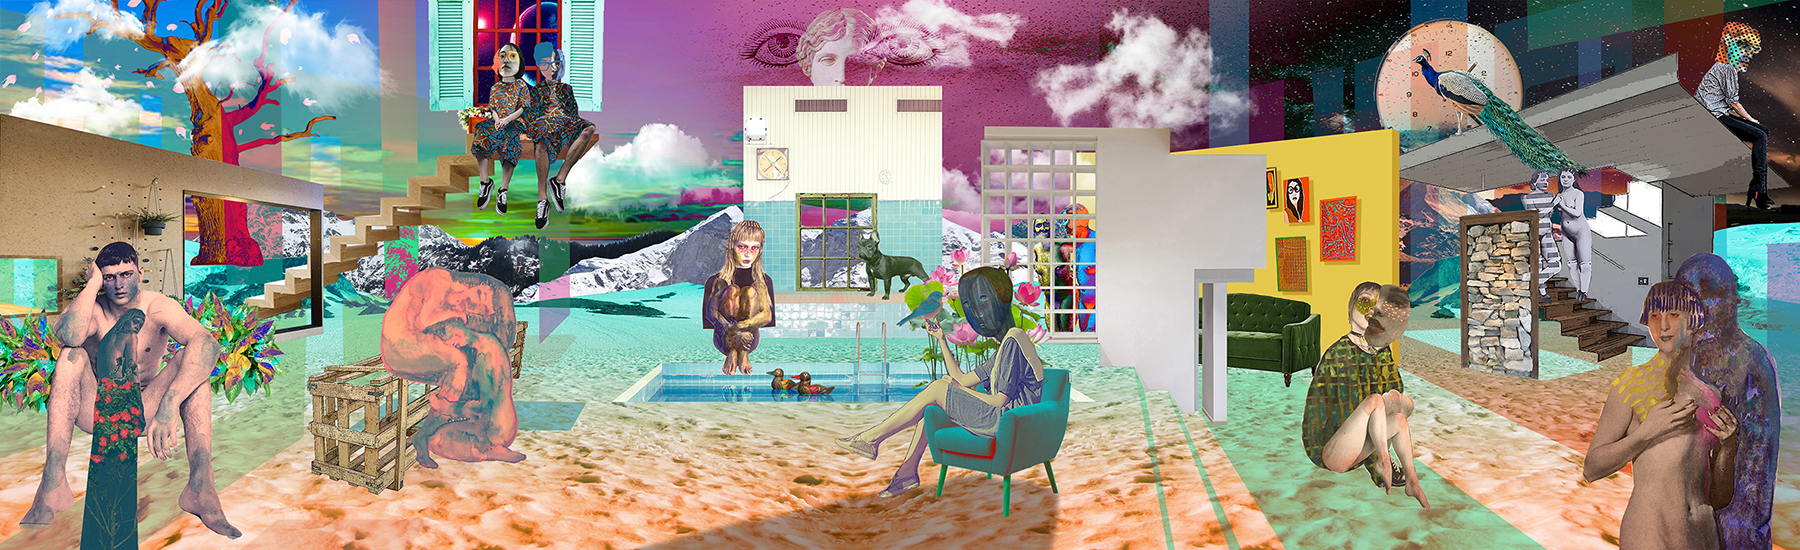 """Day to Day,   29""""x95"""", Digital print on fabric, 2018"""